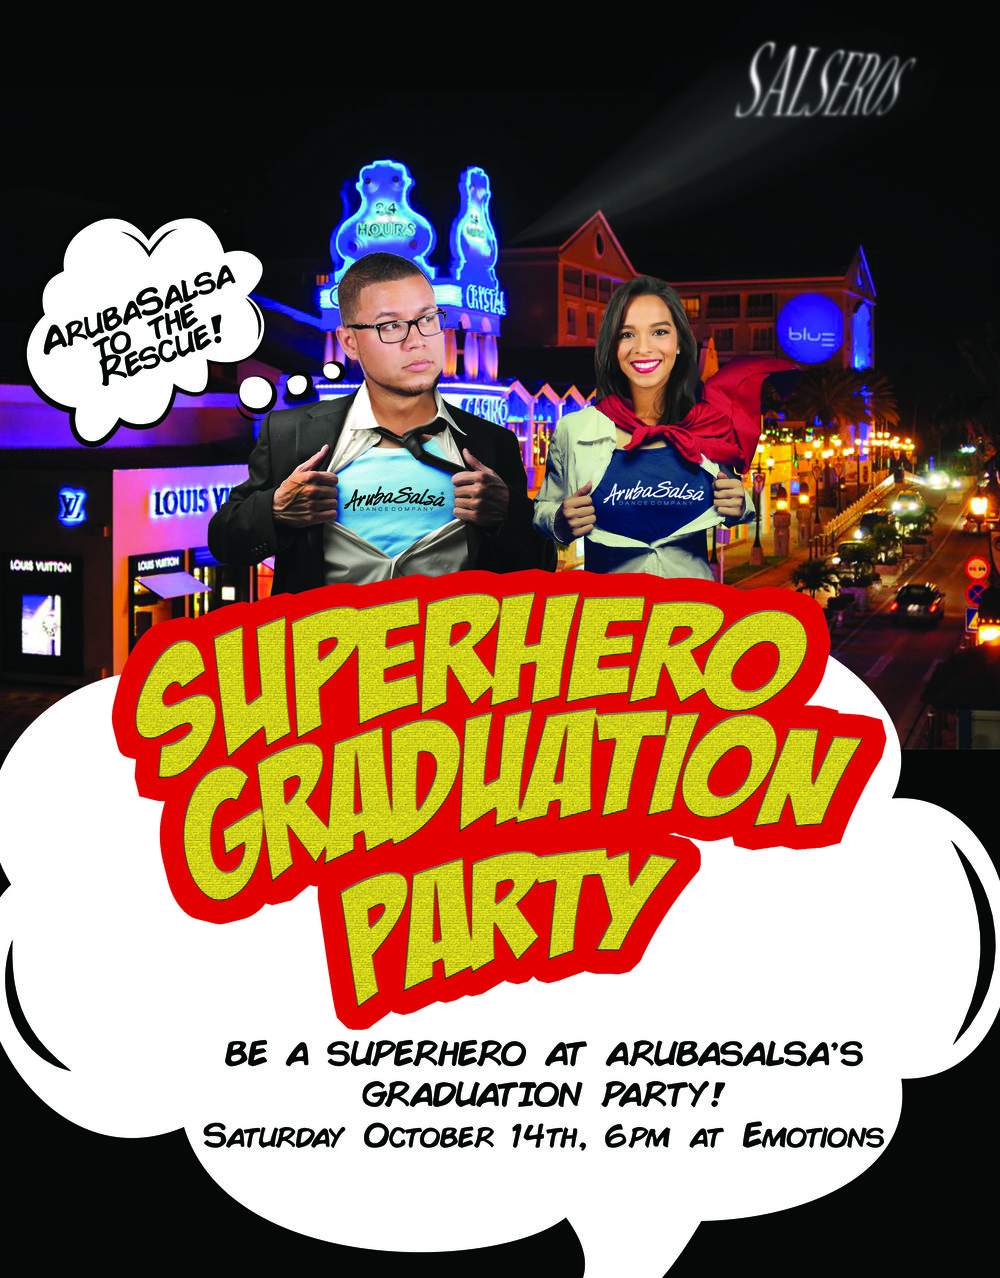 Superhero graduation party.jpg